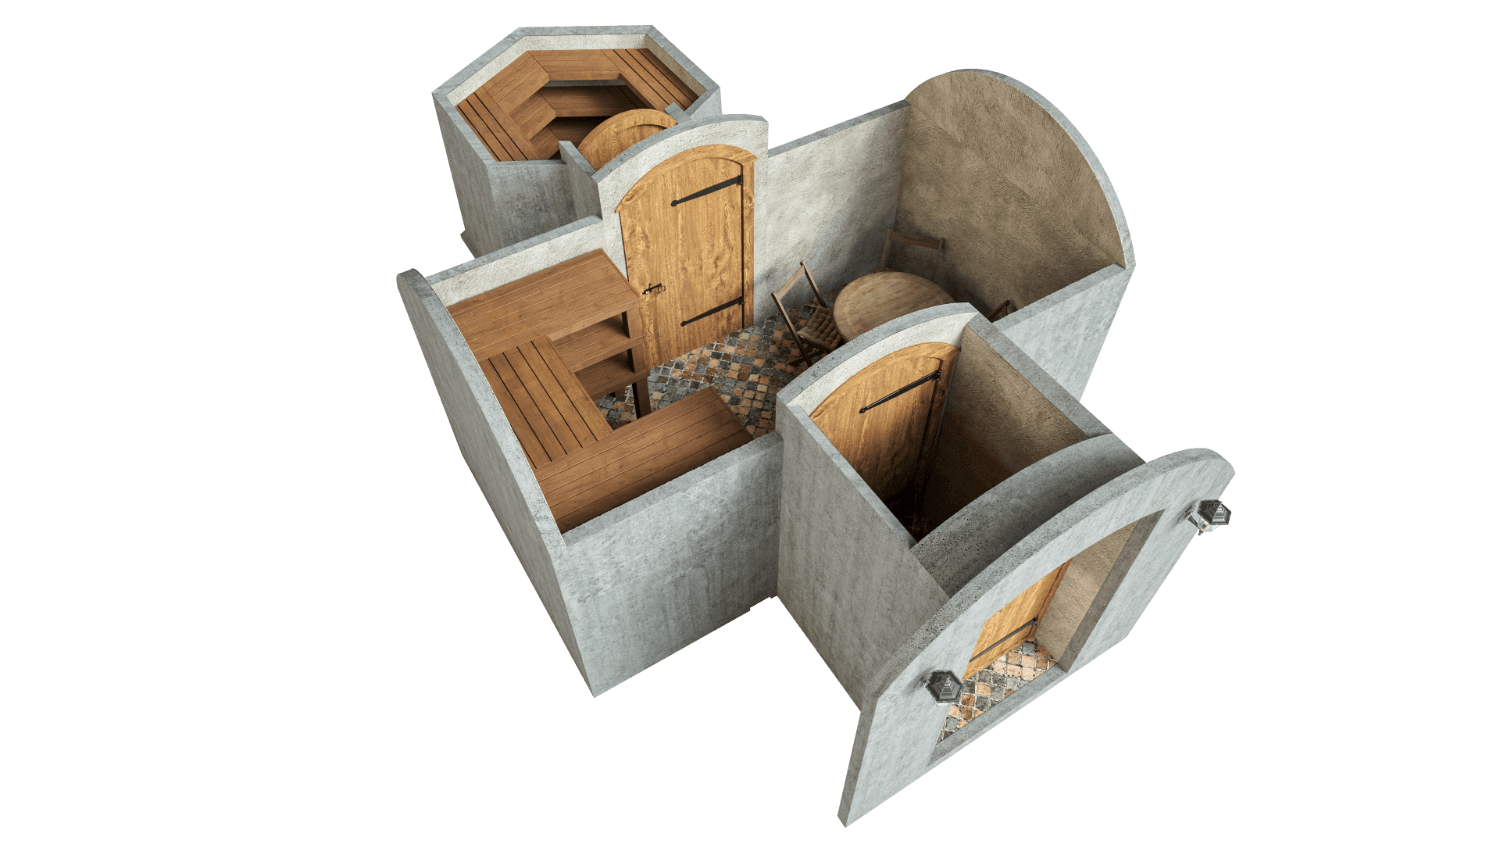 Cellar 16.2 m² STANDARD PACKAGE